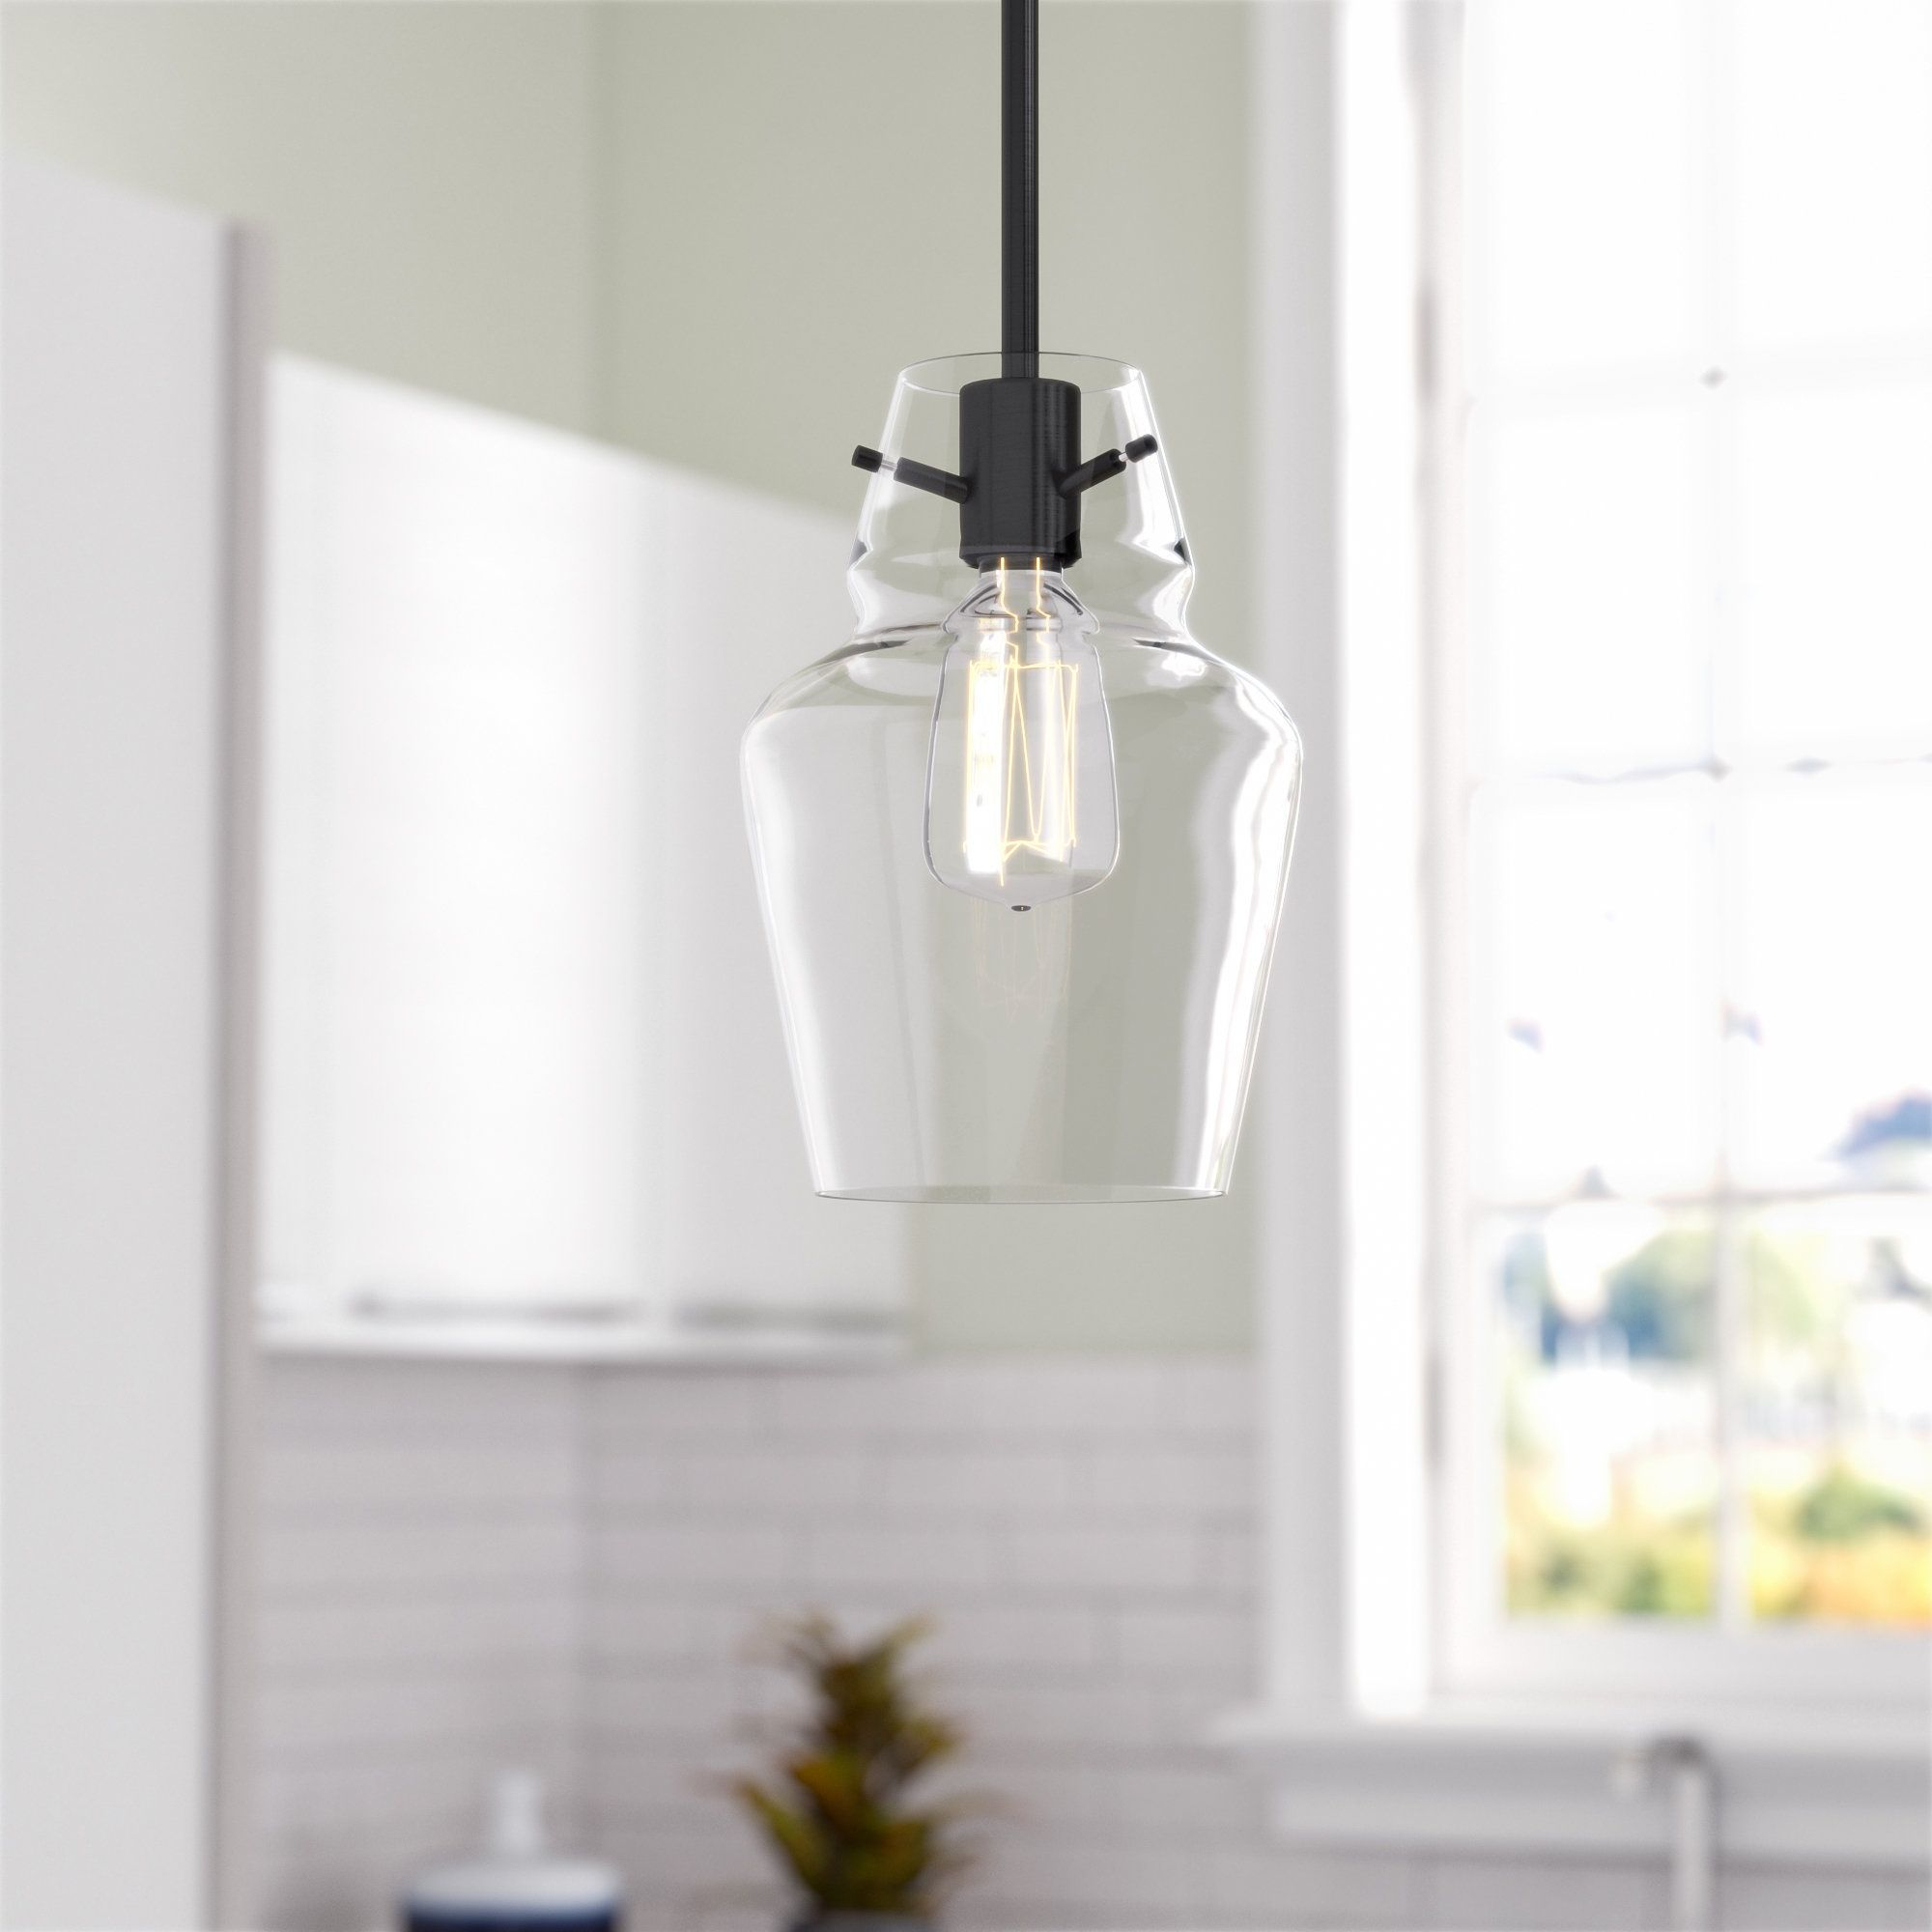 Roslindale 1 Light Bell Pendant | Mini Pendant | Lighting Pertaining To Roslindale 1 Light Single Bell Pendants (Gallery 7 of 30)